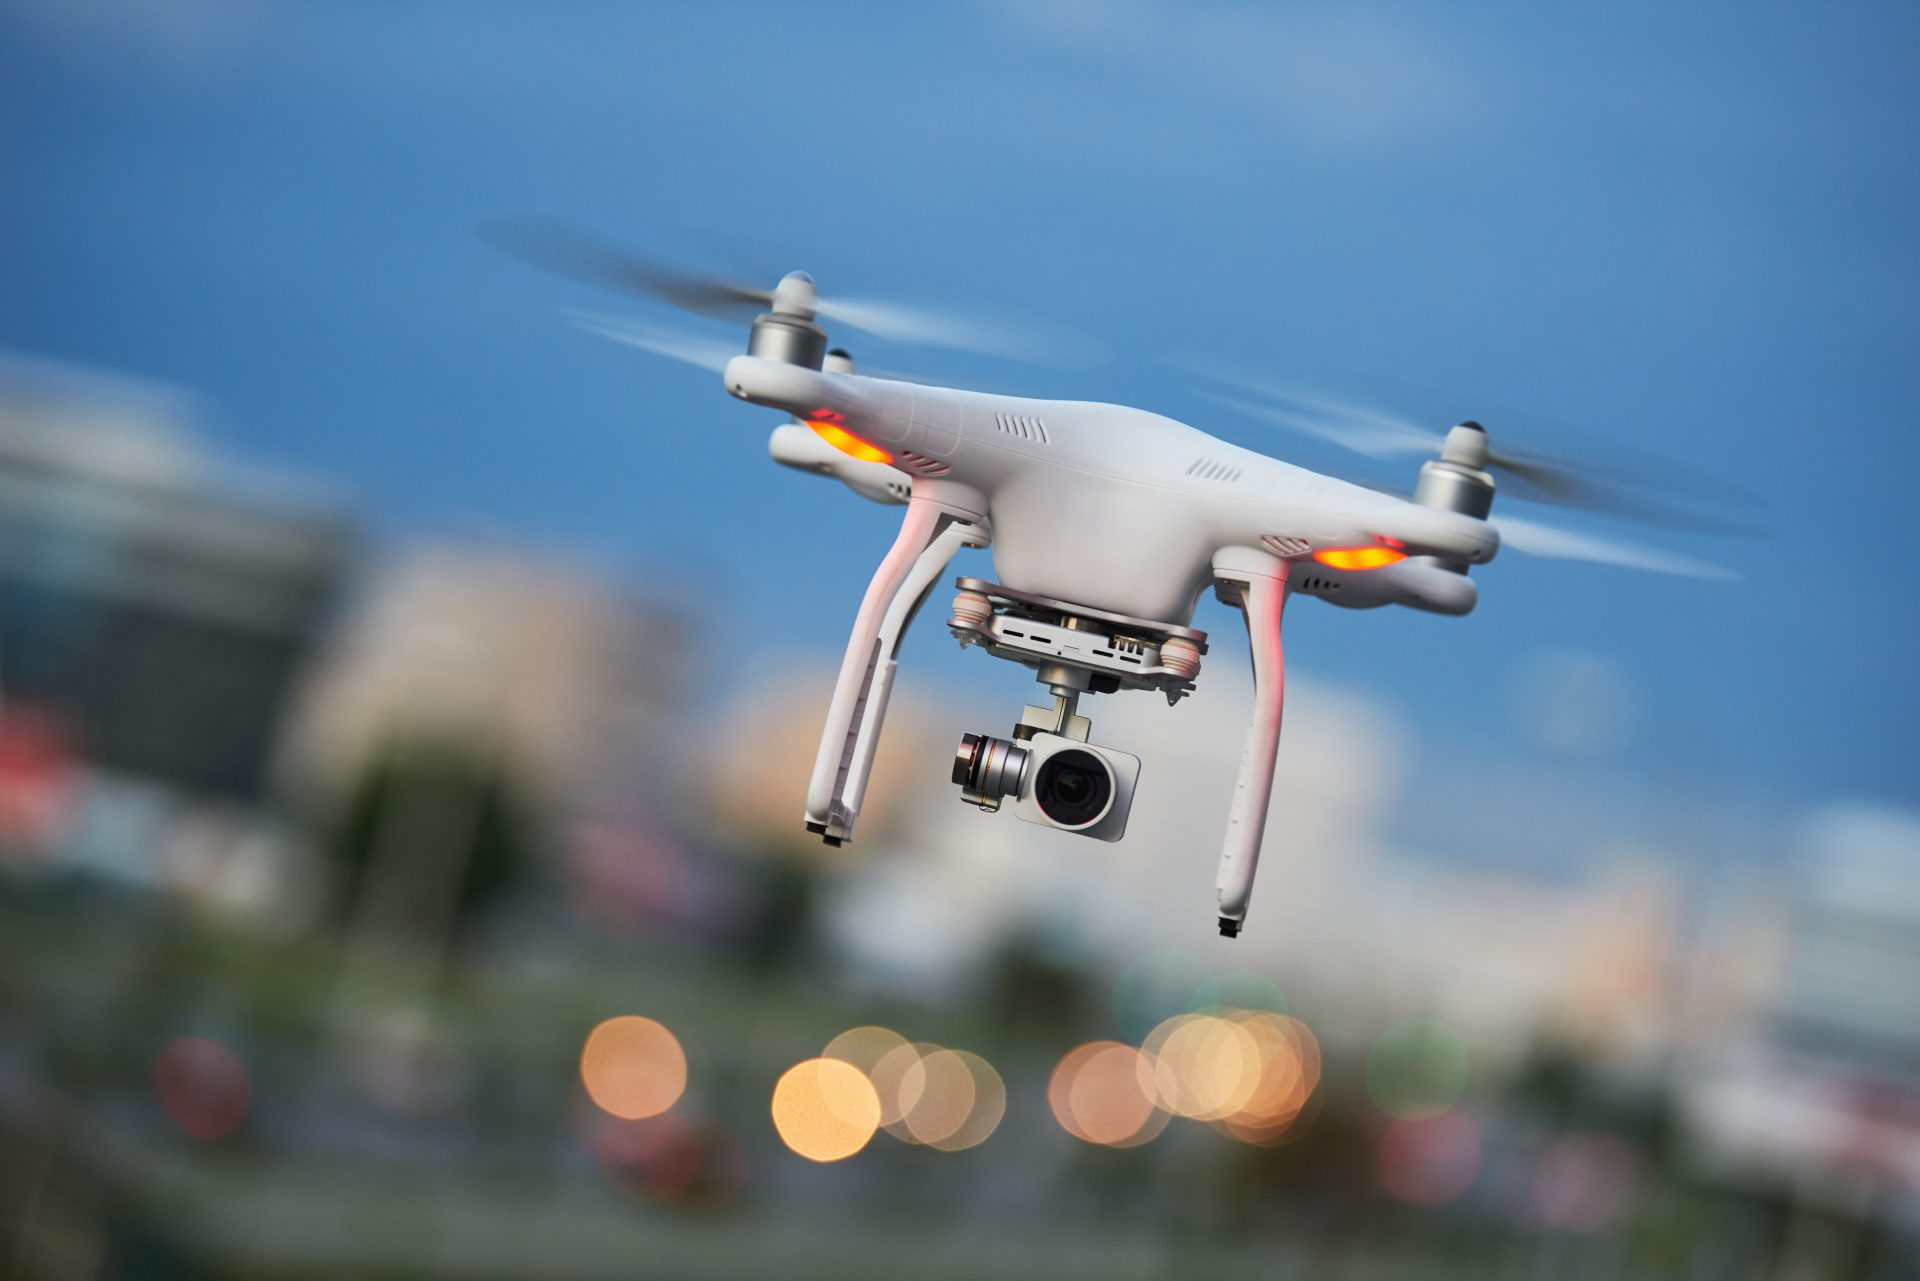 Flying quadcopter drone with digital camera